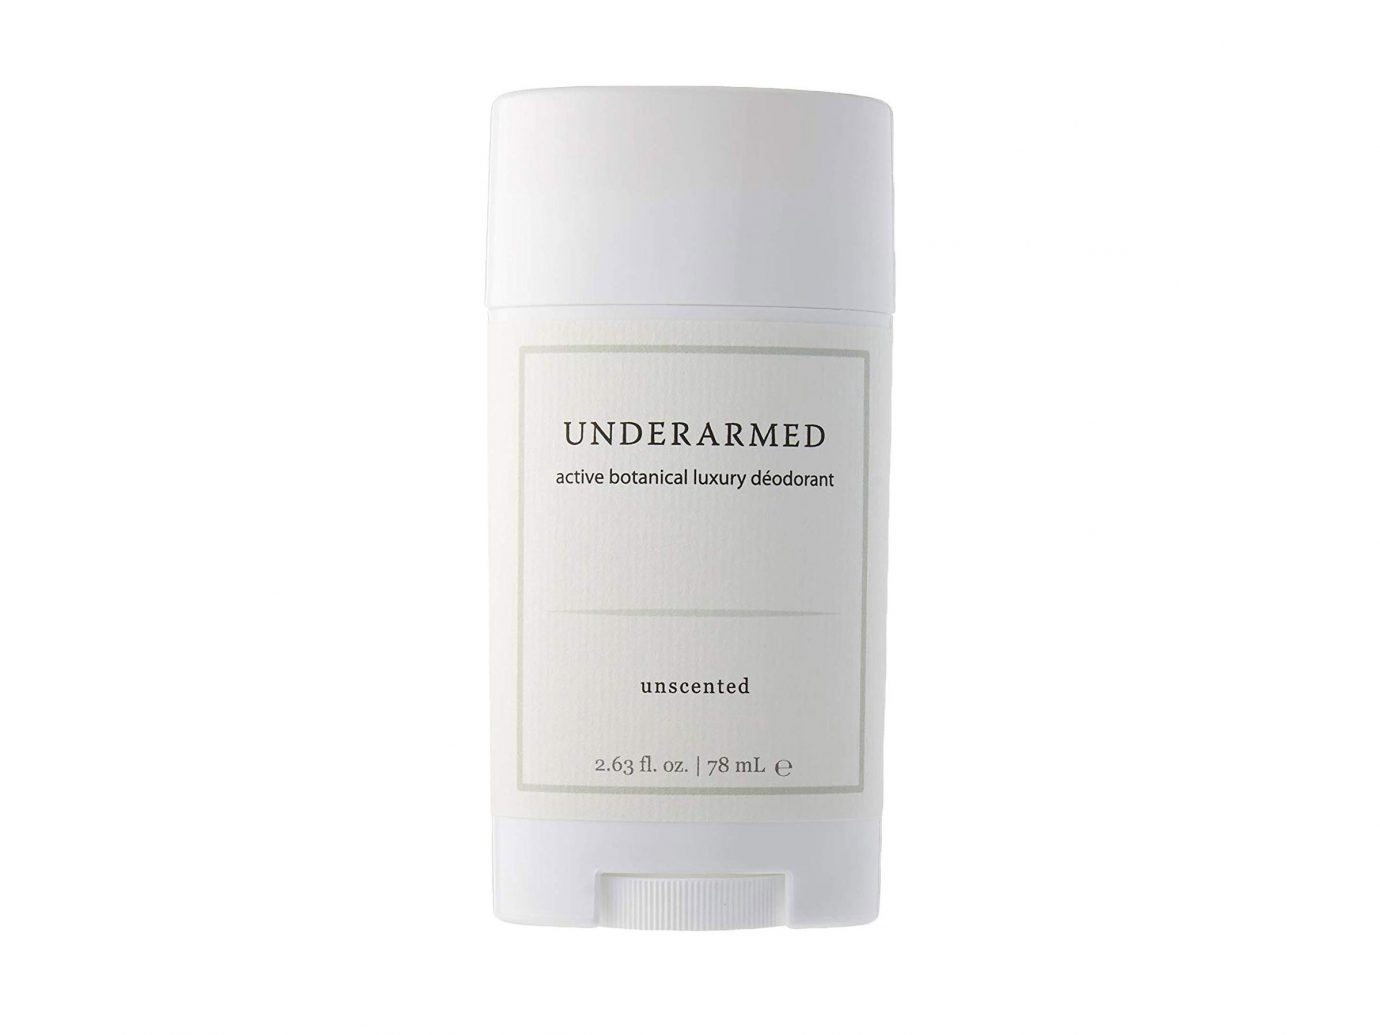 Underarmed Natural Active Botanical Deodorant